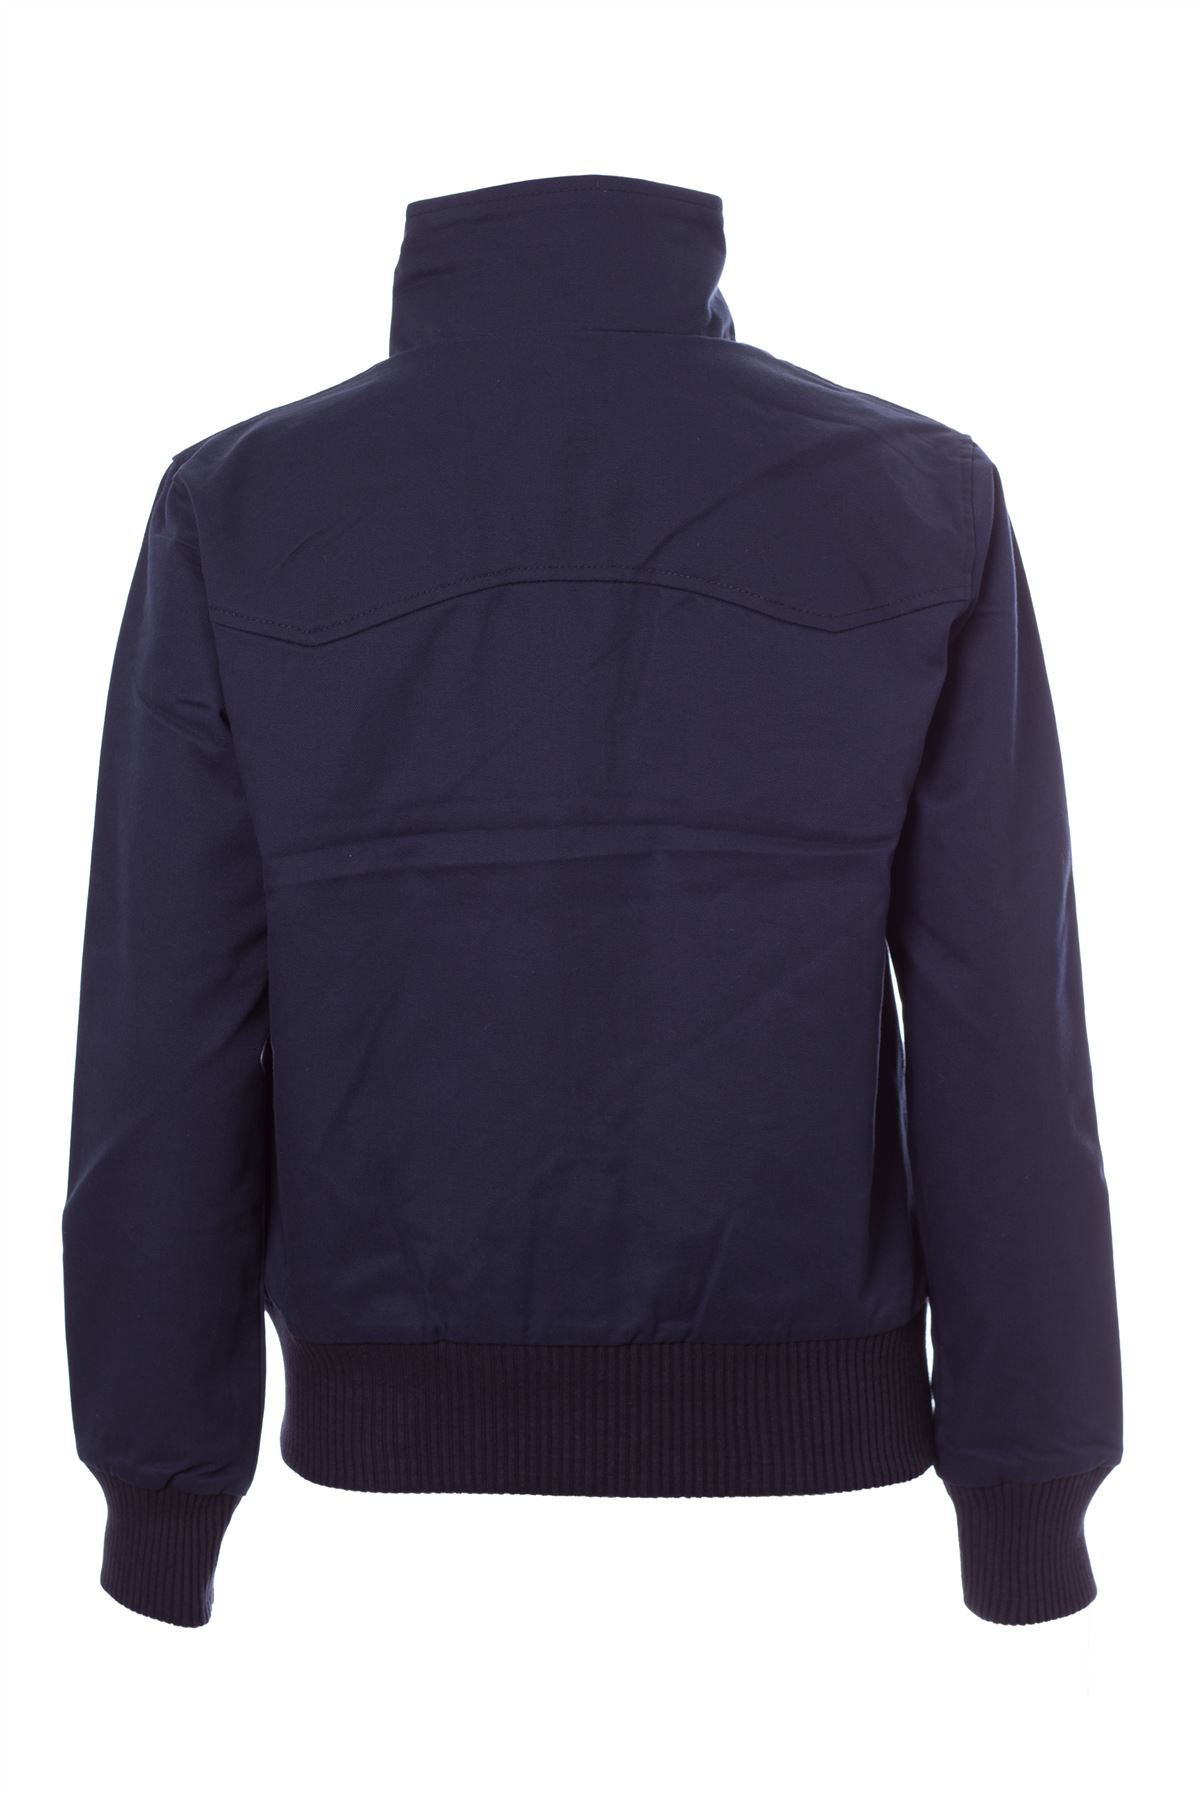 Harrington jackets for women